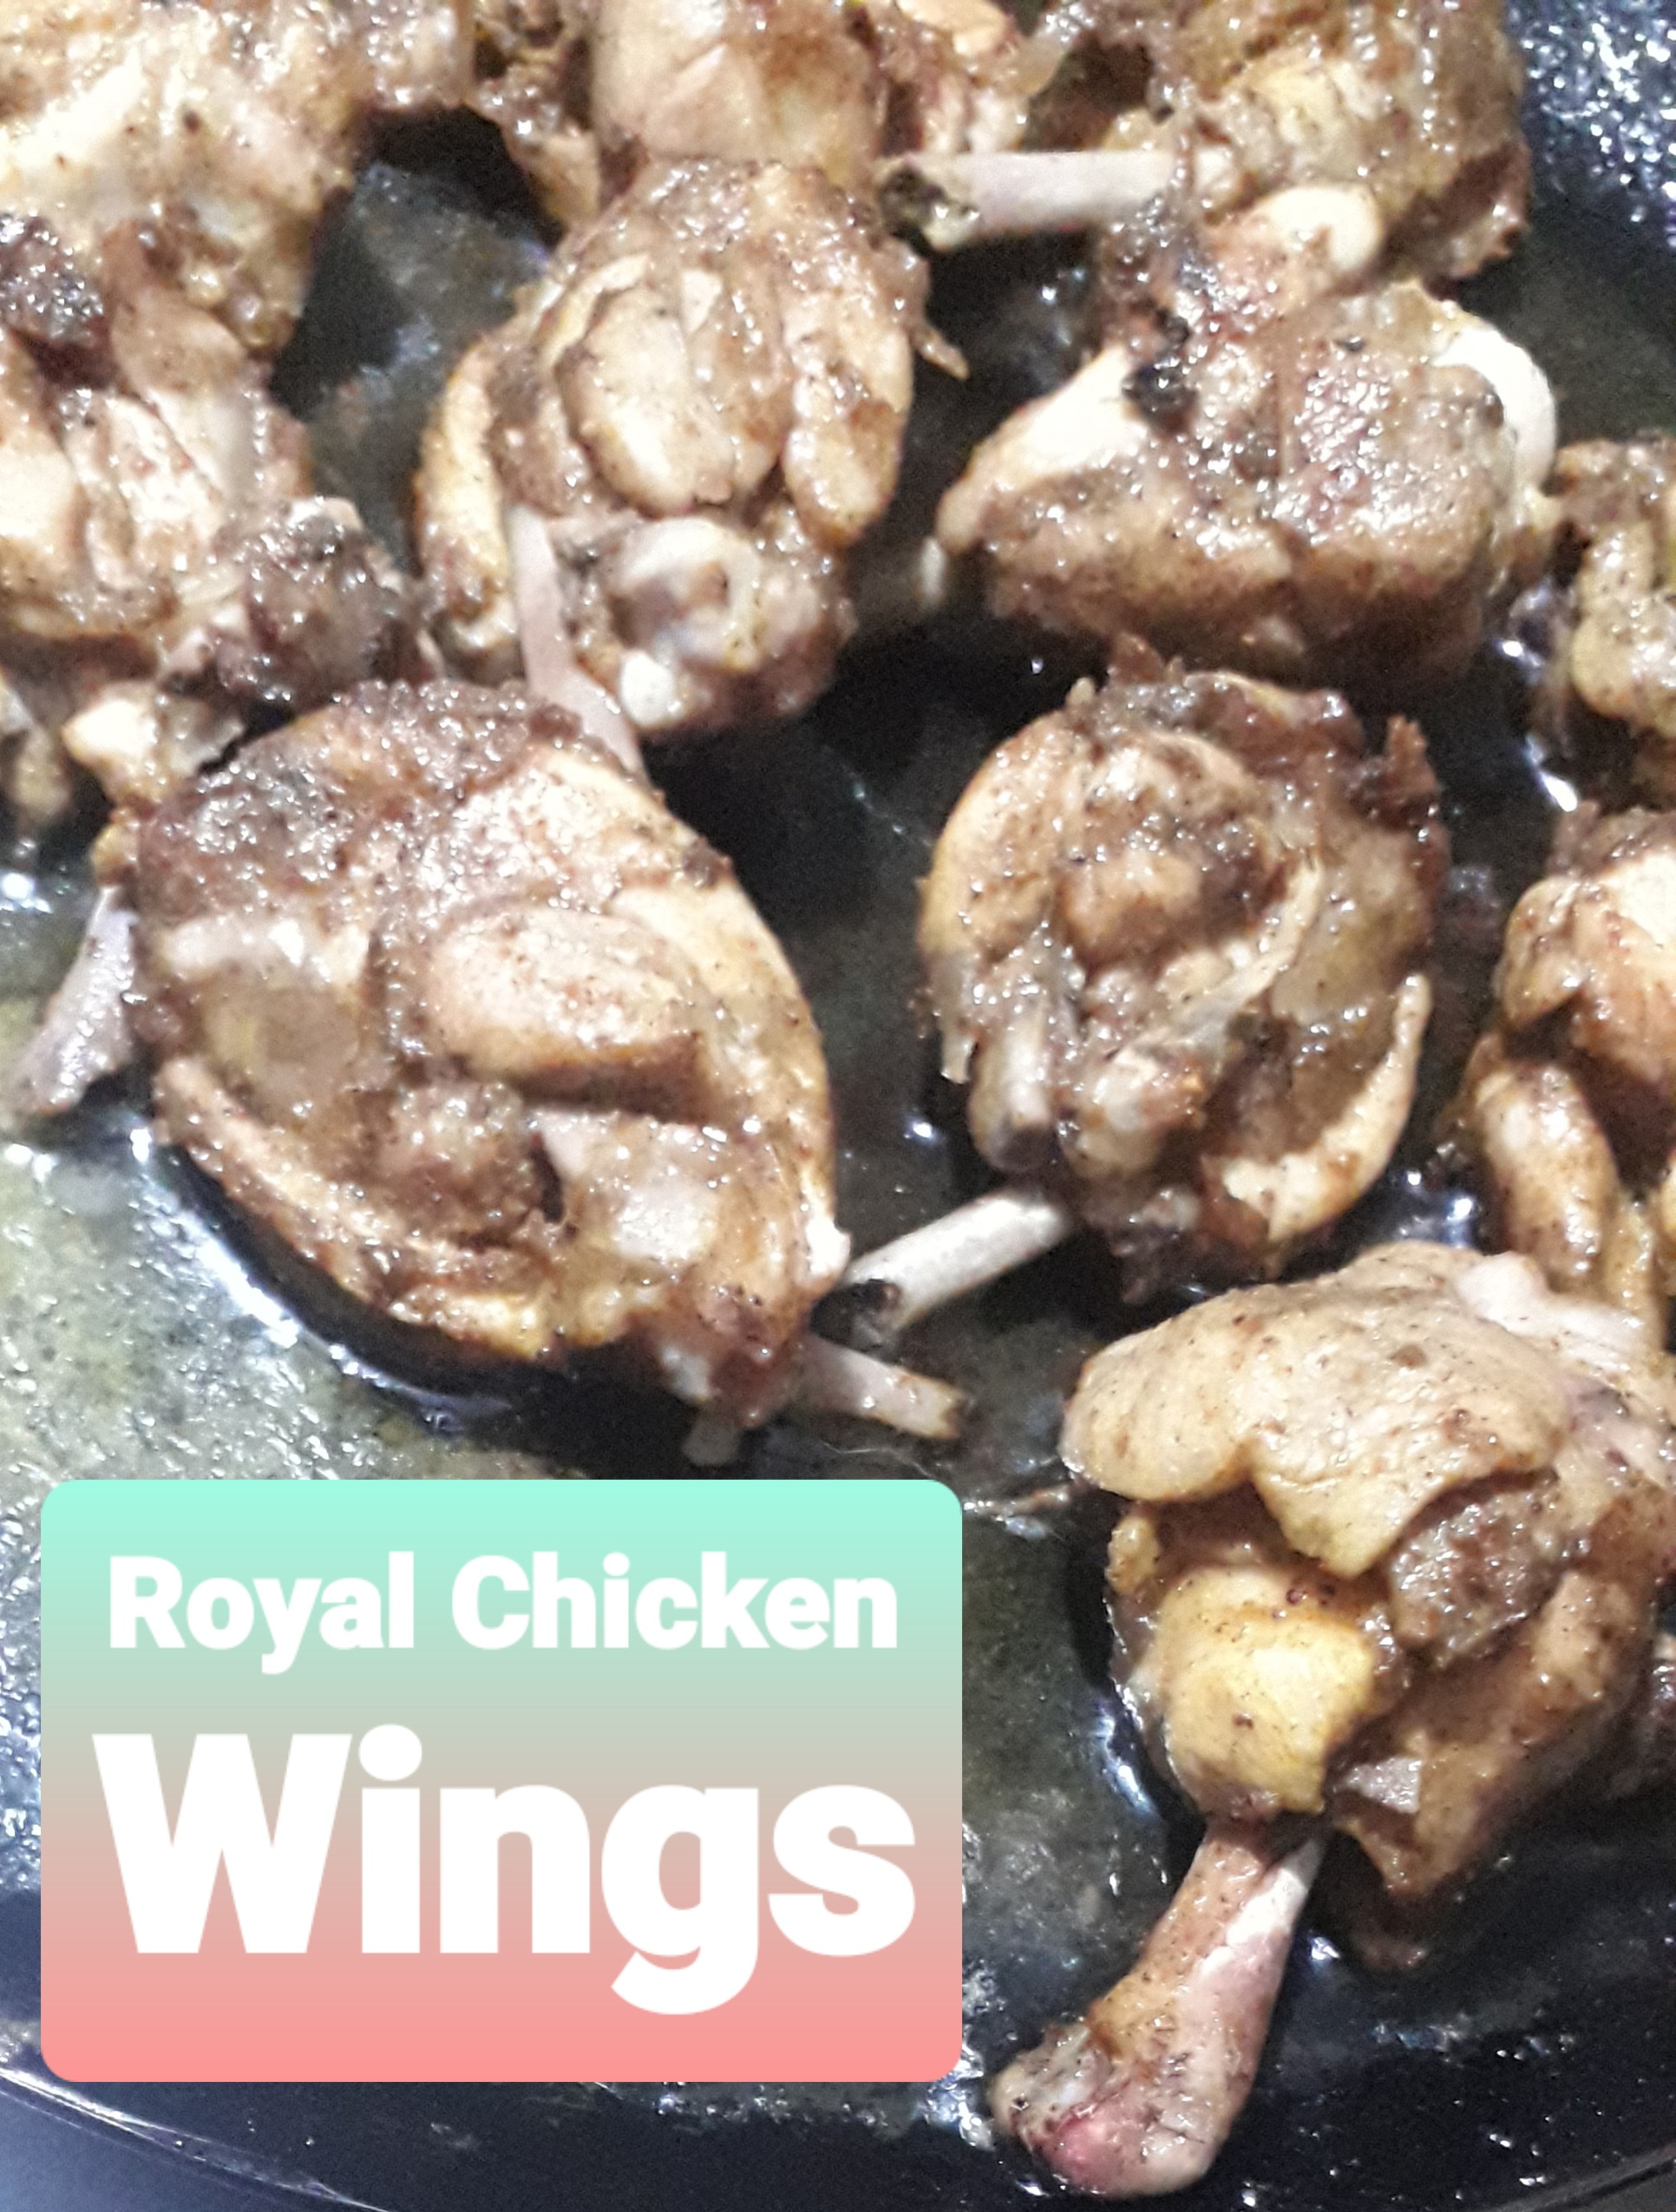 Royal Chicken Wings